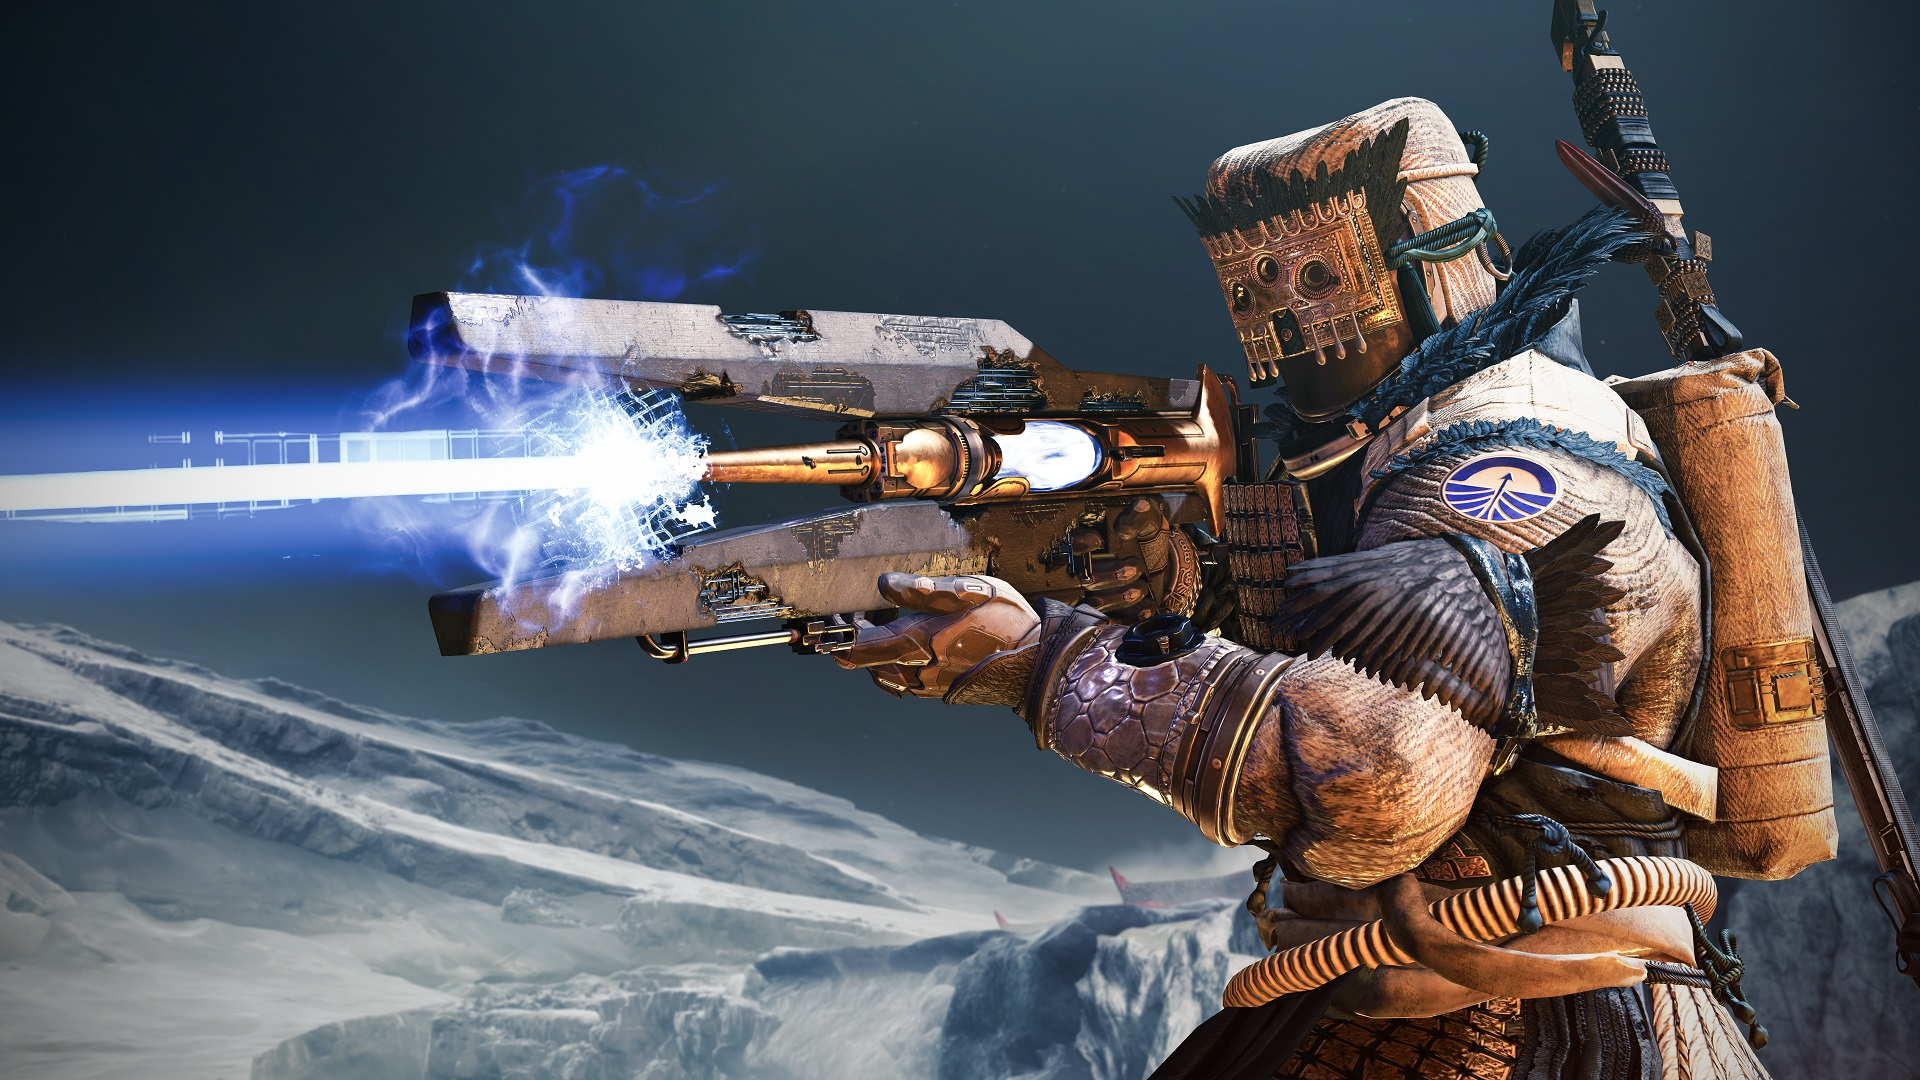 Destiny 2 director Luke Smith says Bungie is not working on